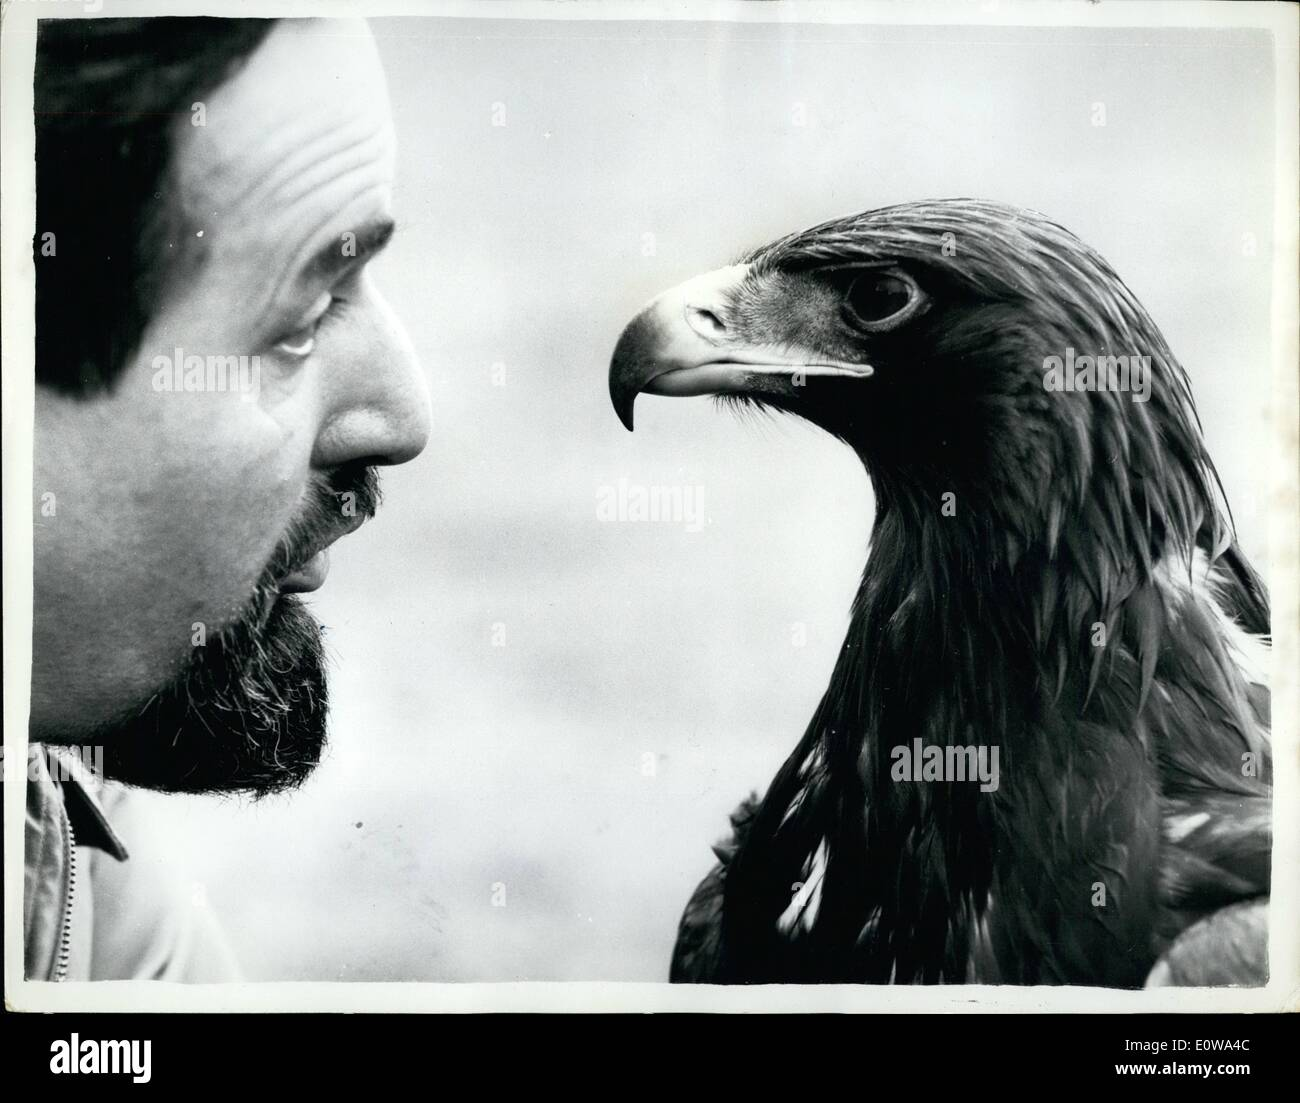 Apr. 04, 1962 - Phillip Has The Job Of ''Untaming'' The Golden Eagle: The Golden Eagle is a rare bird on these shores - and even rarer- is a tame one. Crofter Donald MacIsaac of Benbecula (North Scotland) was responsible for catching and taming ''Mrs. Murdoch'' as his 11 months old Eagle is called. But the authorities heard about ''Mrs. Murdoch'' - and informed Donald that Golden Eagles are ''Protected Birds'' - so - back-to-nature she must go. The job of preparing ''Mrs. Murdoch'' to return to her natural state has been given to Phillip Glazier of Whitefacem near Bonar Ridge, Sutherland - Stock Image